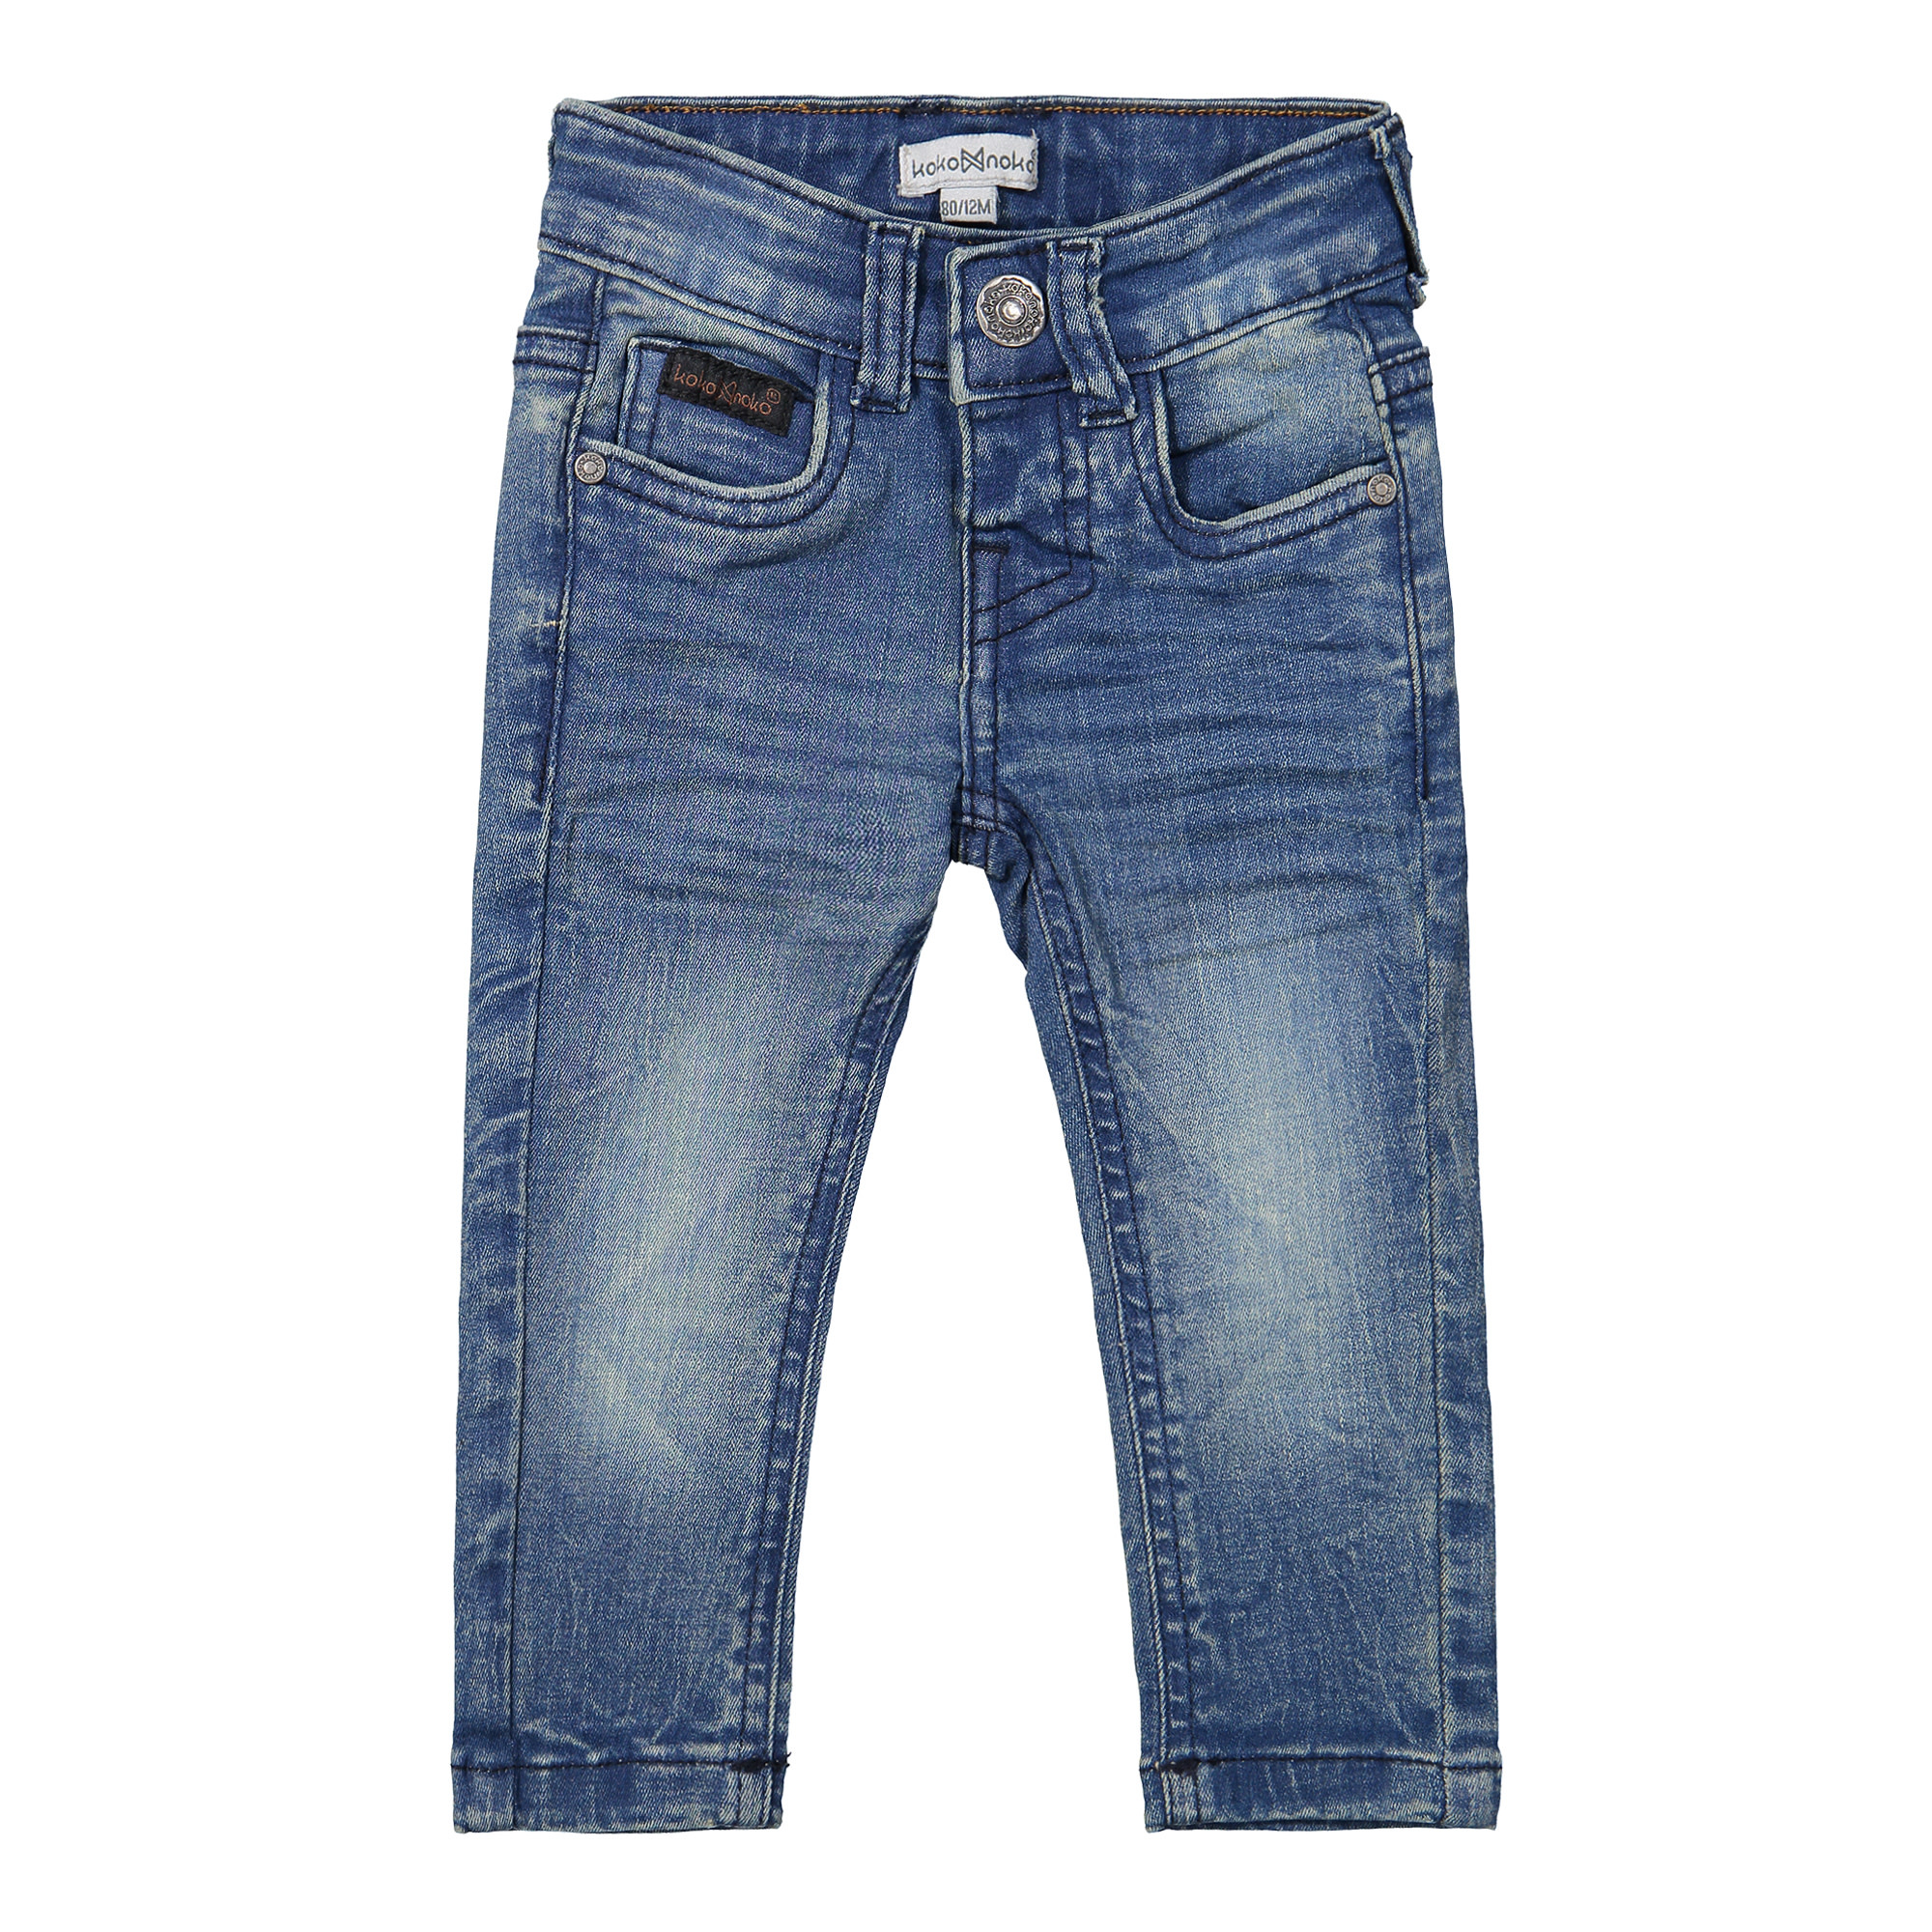 Jeans with Leather Placket on Pocket